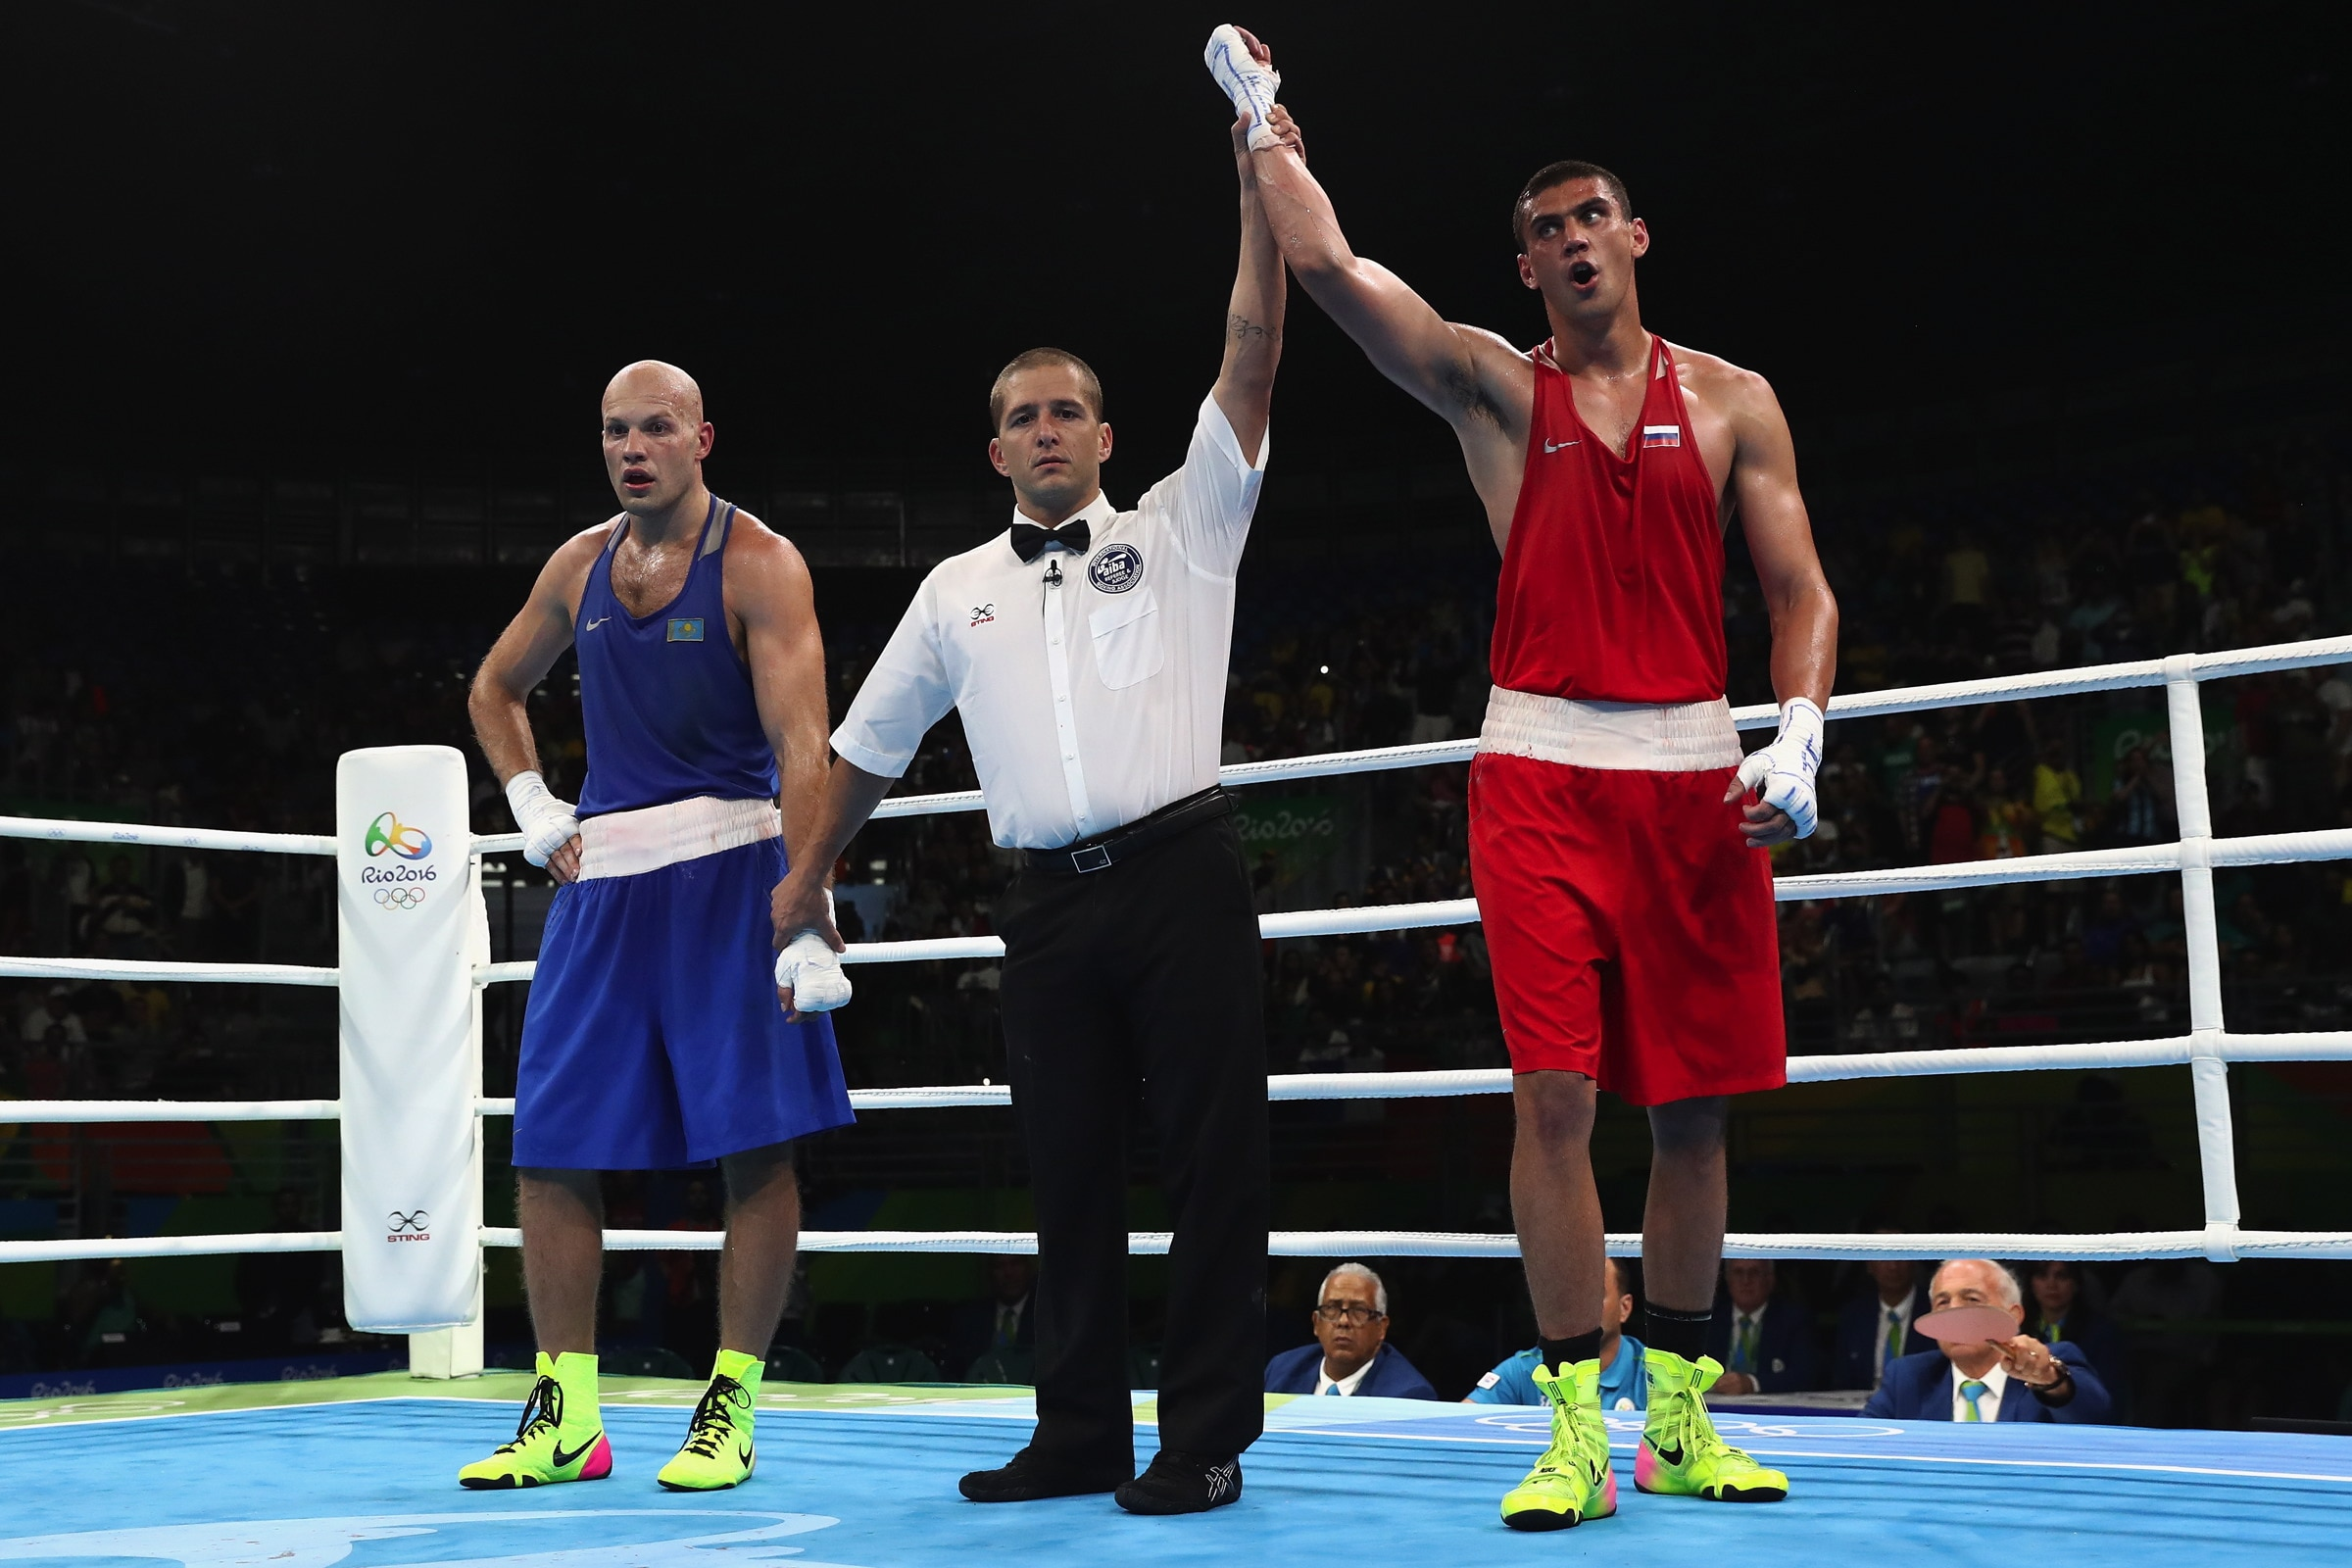 Boxing - Up to 91 Kg (Heavy Weight) Men